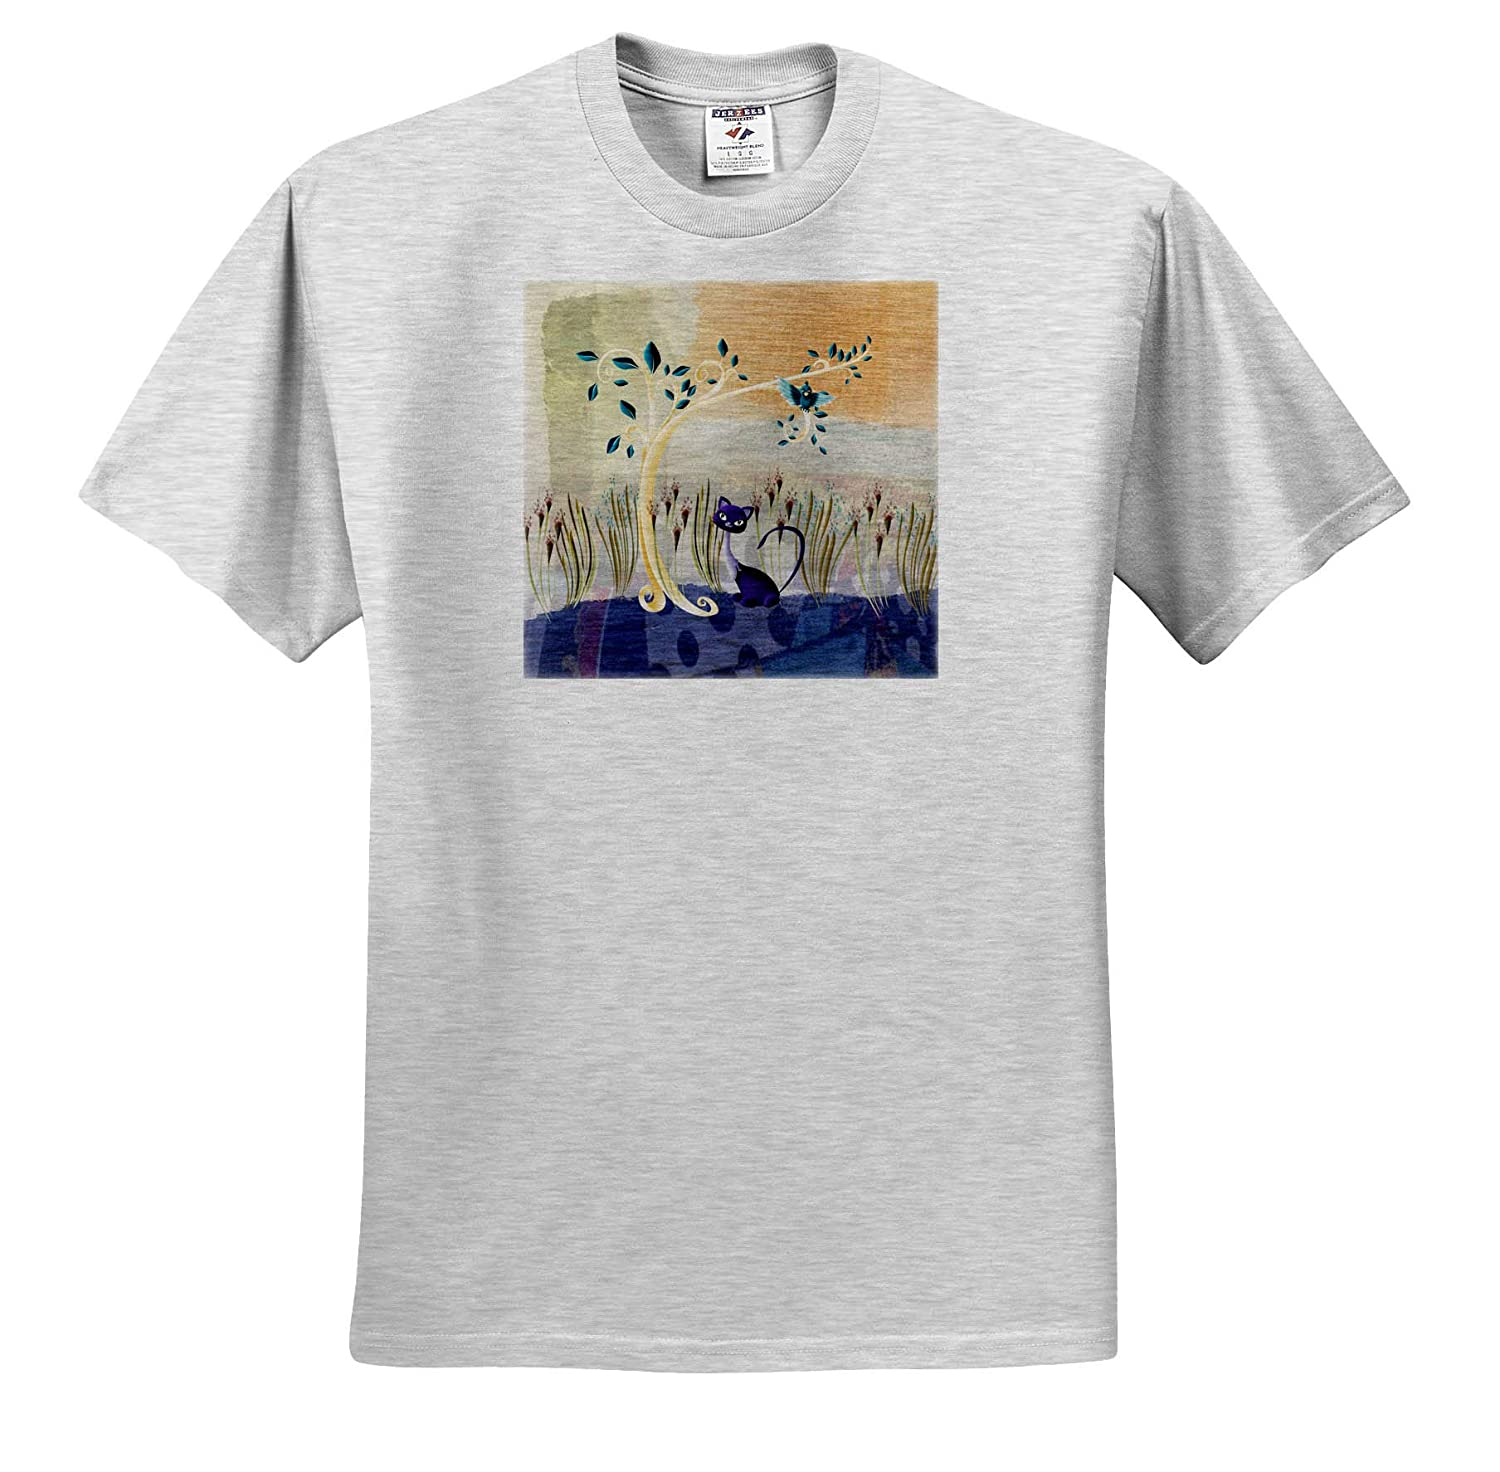 Purple Cat Under Tree with Aqua Blue Bird on Branch T-Shirts 3dRose Beverly Turner Designs Pretty Flower